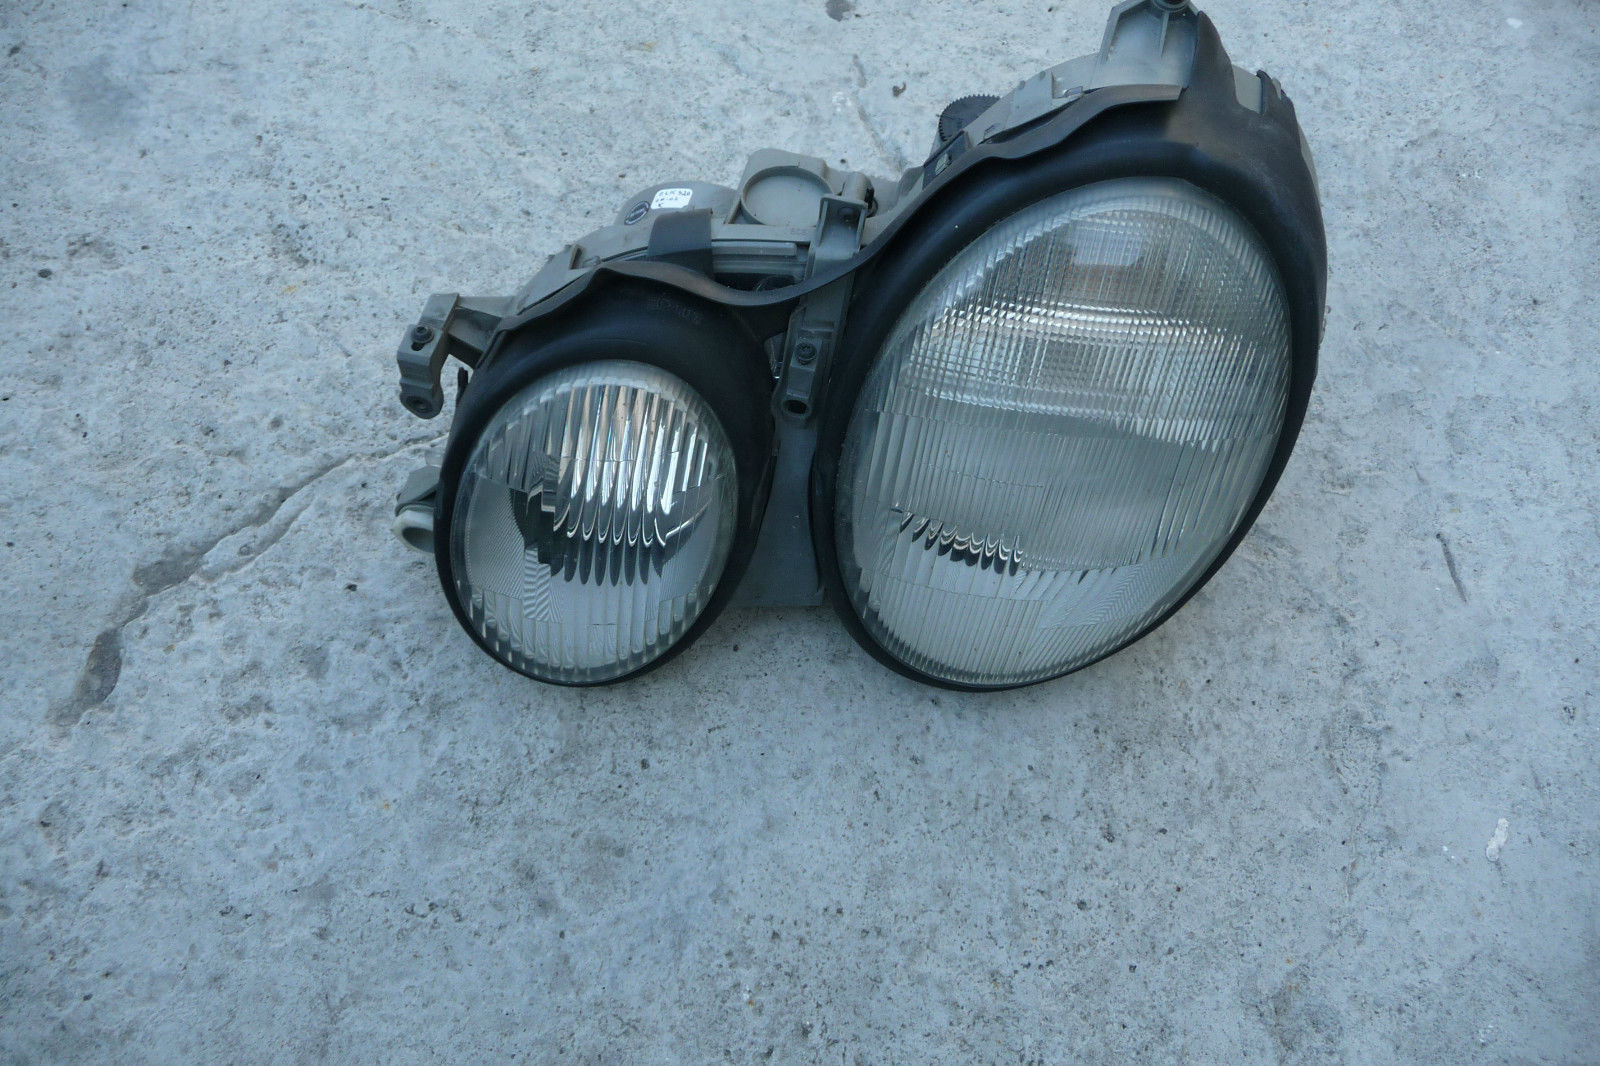 Mercedes Benz CLK Class Left Headlight Assembly  2088200561 OEM  OE